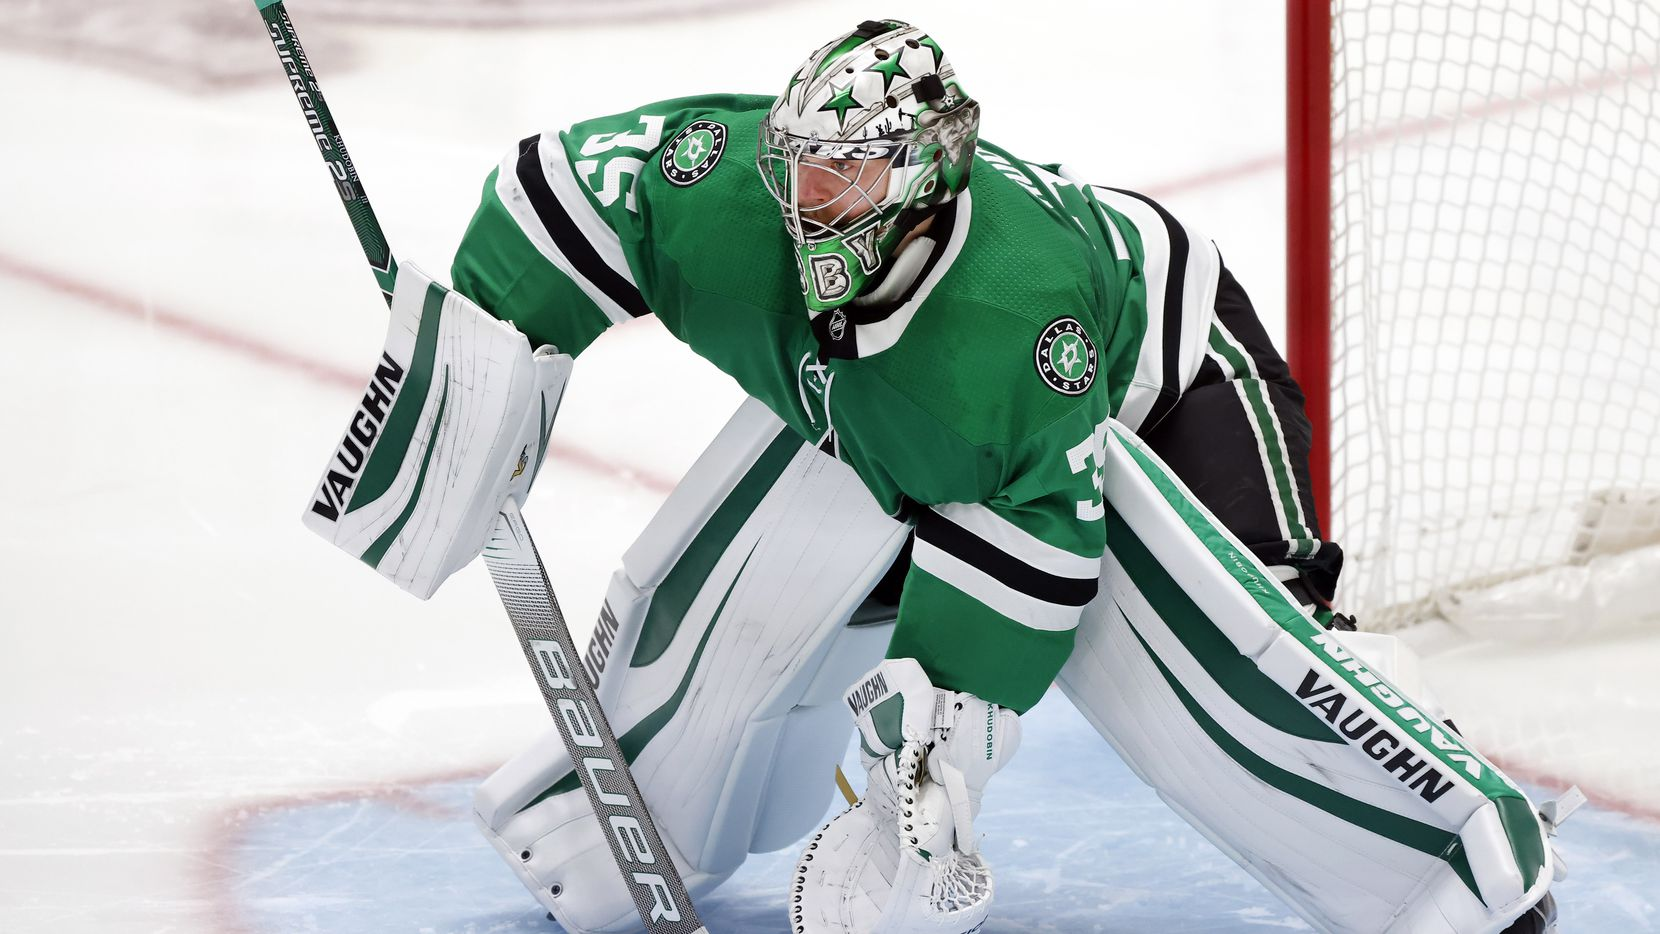 Dallas Stars goaltender Anton Khudobin (35) deflects a loosely shot puck by the Columbus Blue Jackets in the third period at the American Airlines Center in Dallas, Thursday, March 4, 2021. The Stars fell to the Blue Jackets, 3-2.